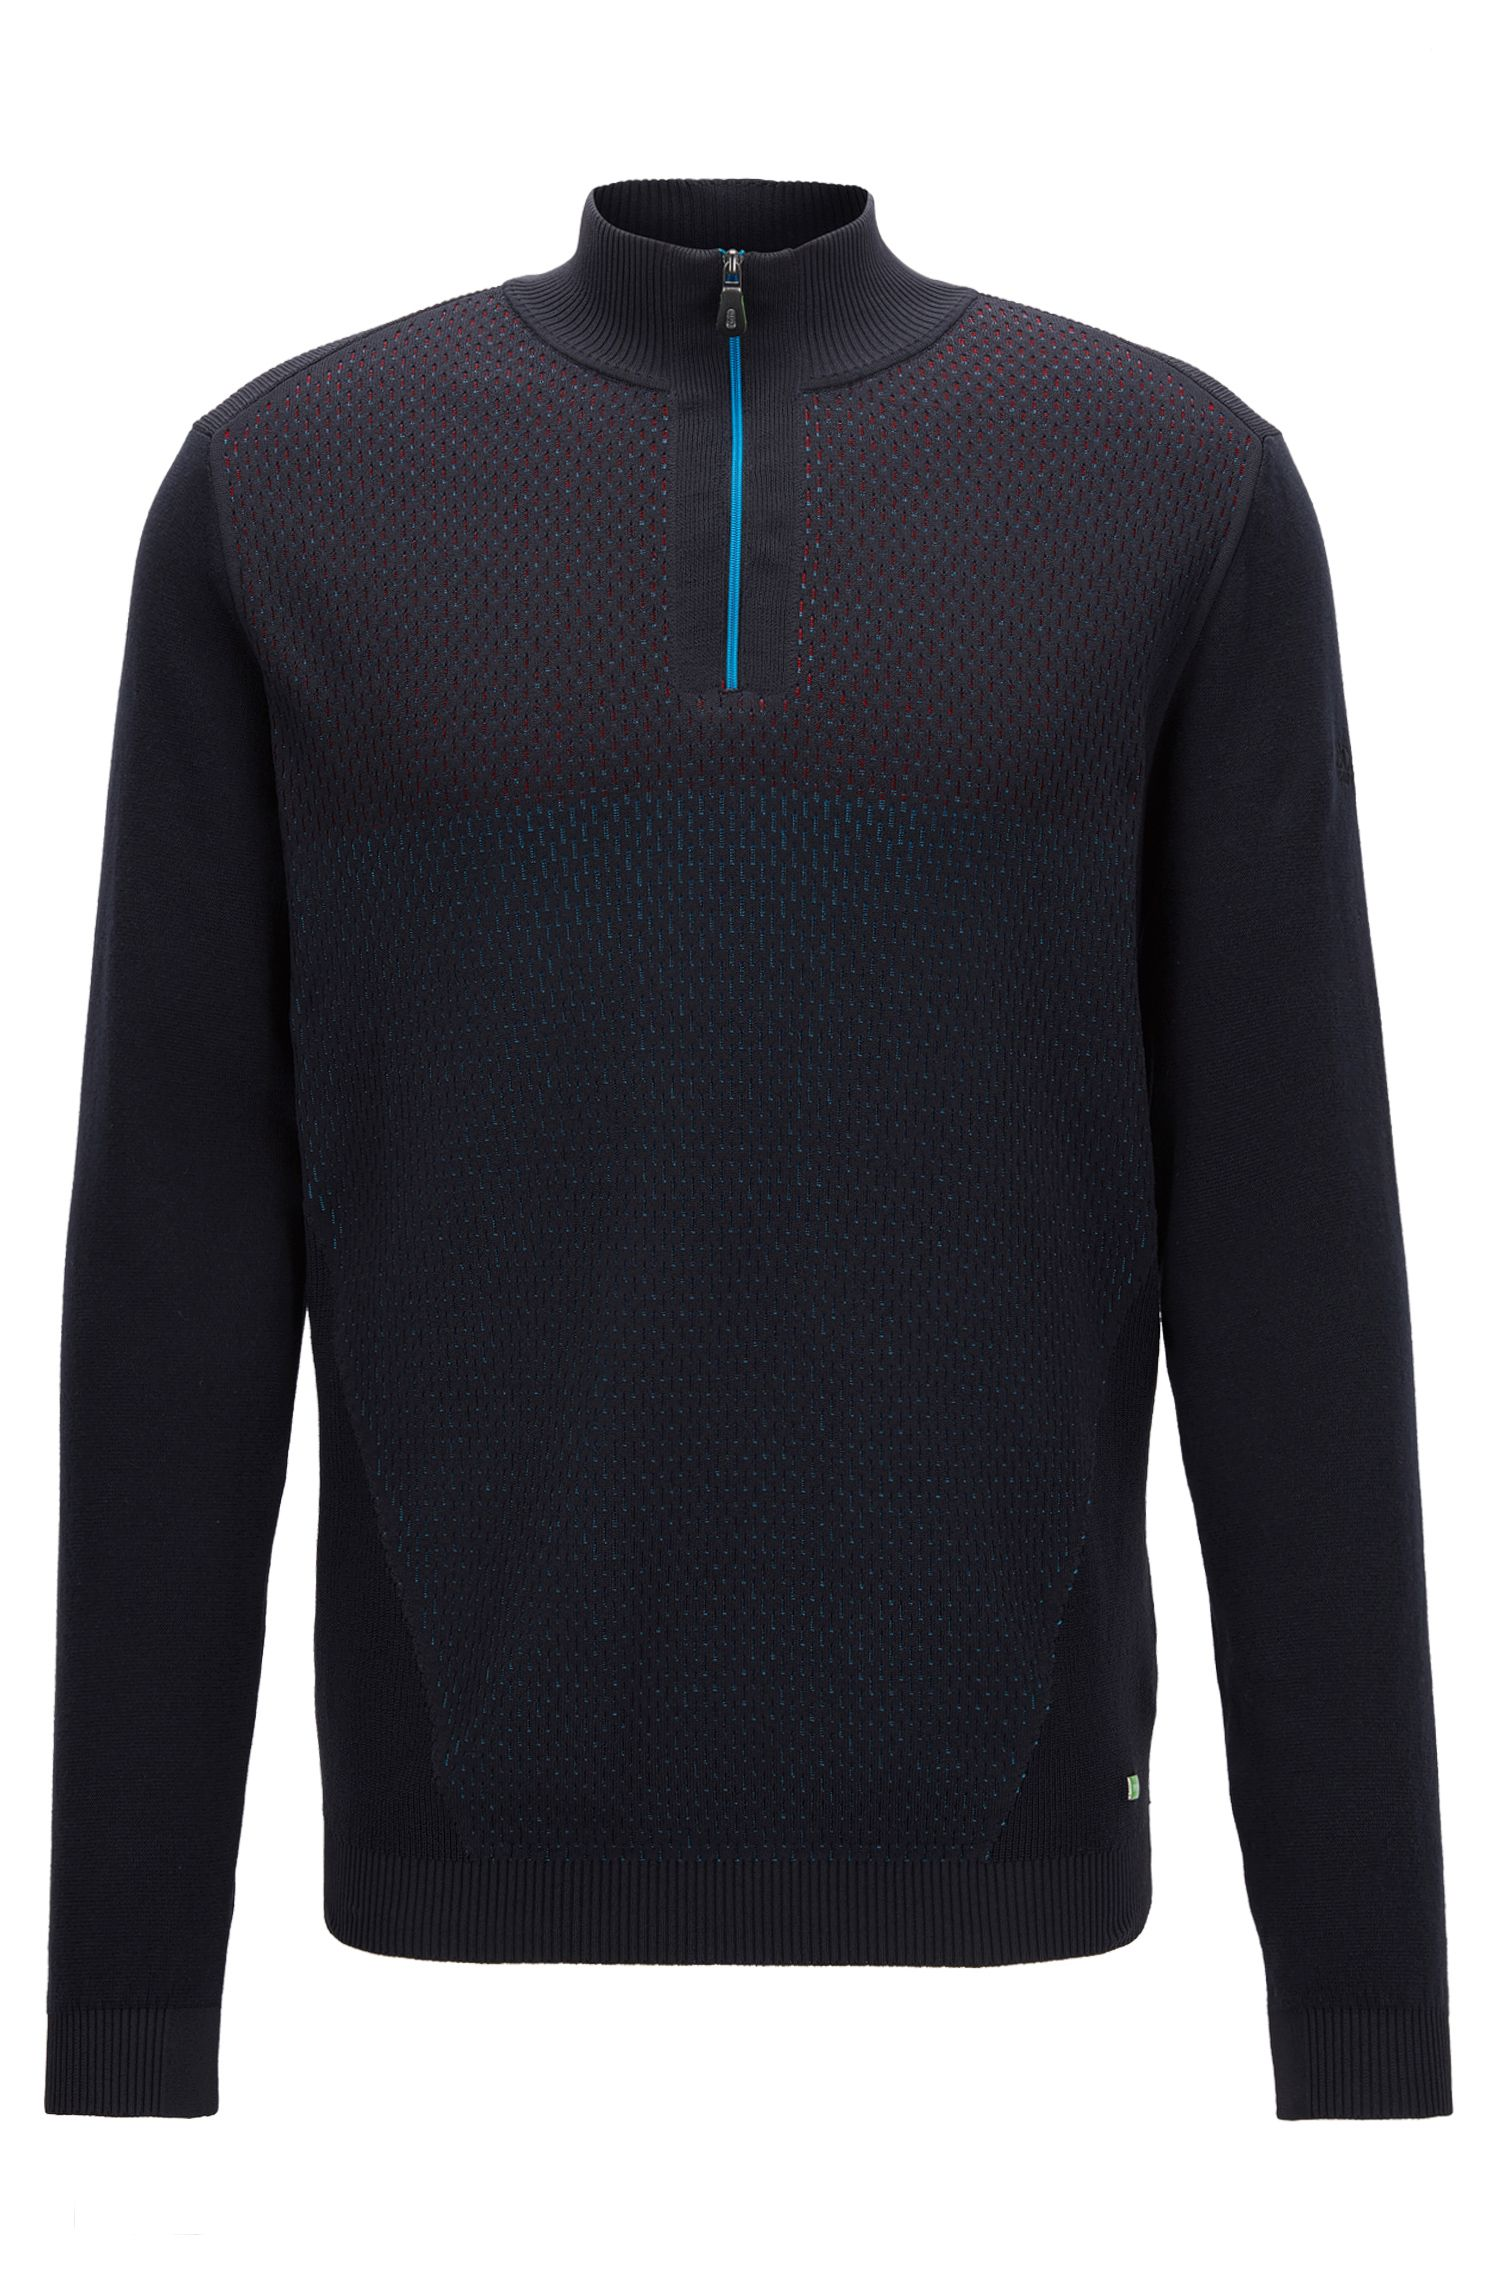 Zip-neck sweater in a cotton blend